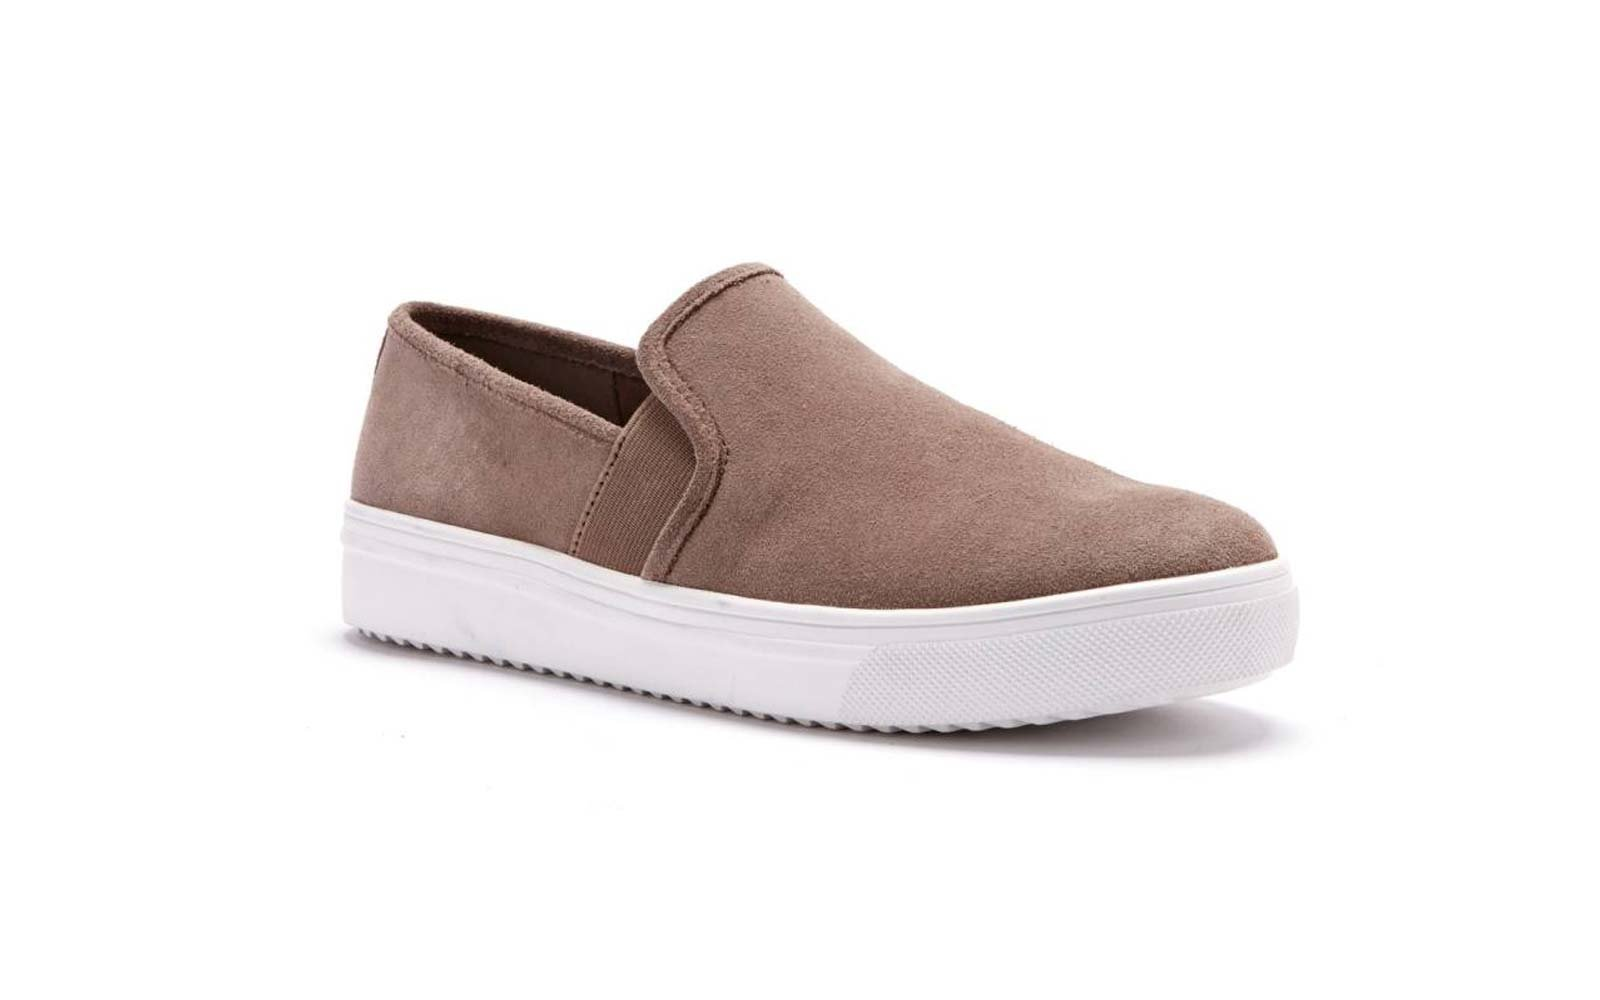 Blondo slip-on sneaker